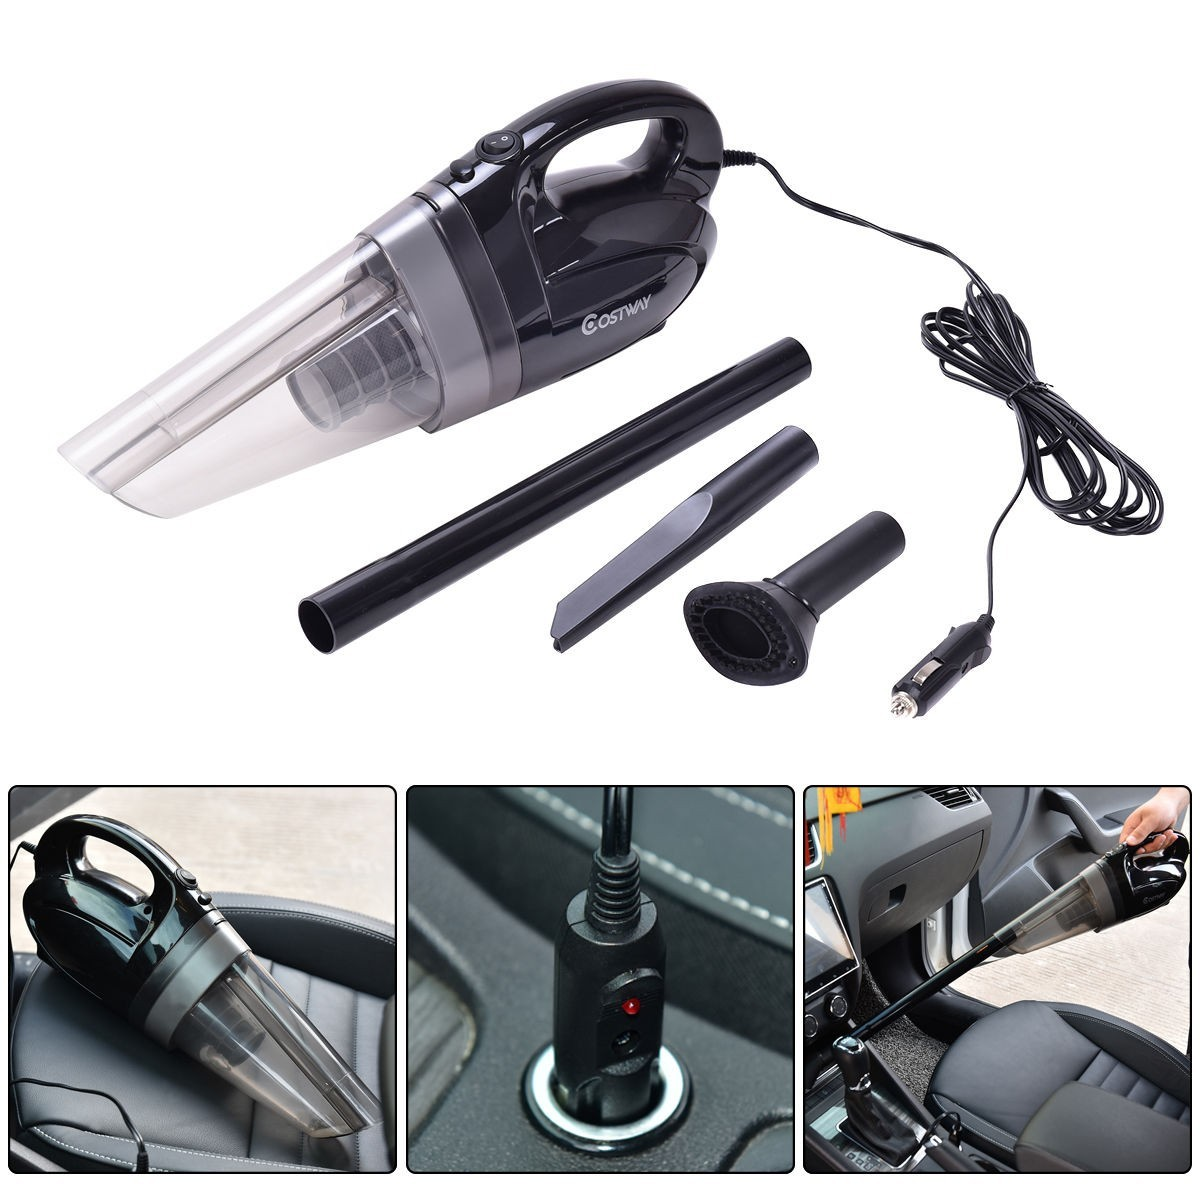 12V 100W Portable Handheld Vacuum Cleaner For Cars - Black